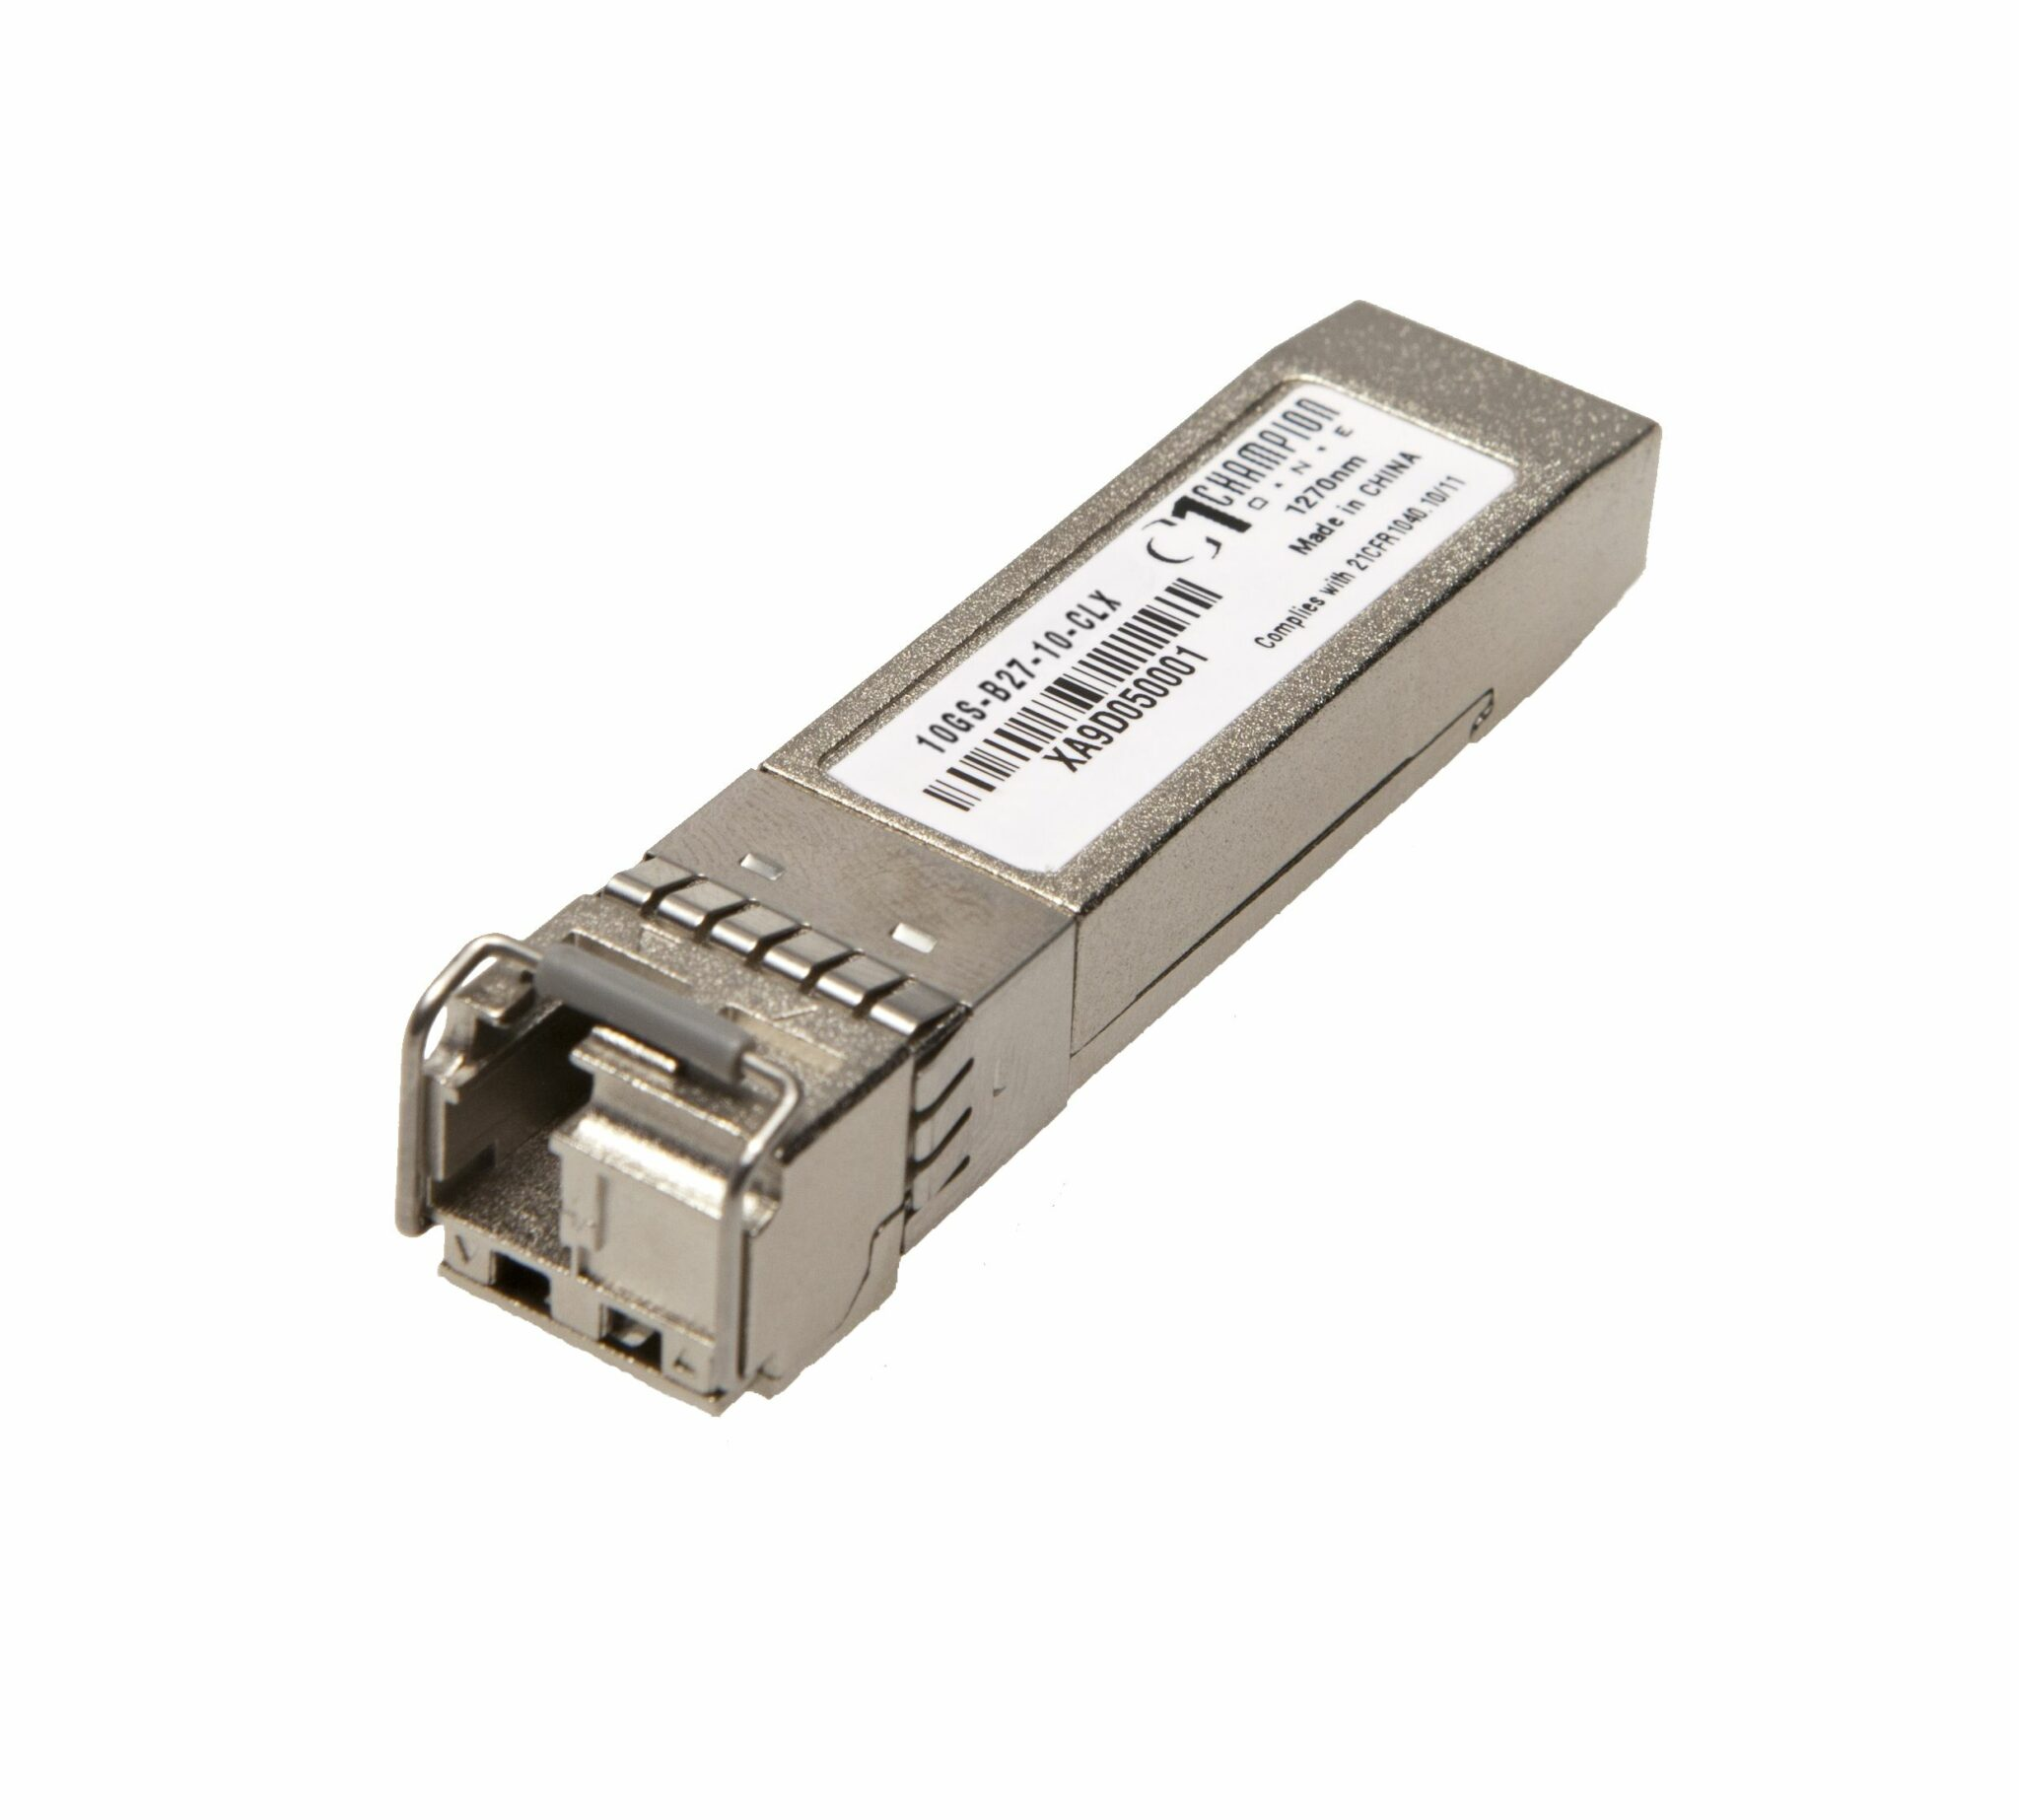 SFP+ SF 10GBase-LR 1270nm 10km, Calix compatible